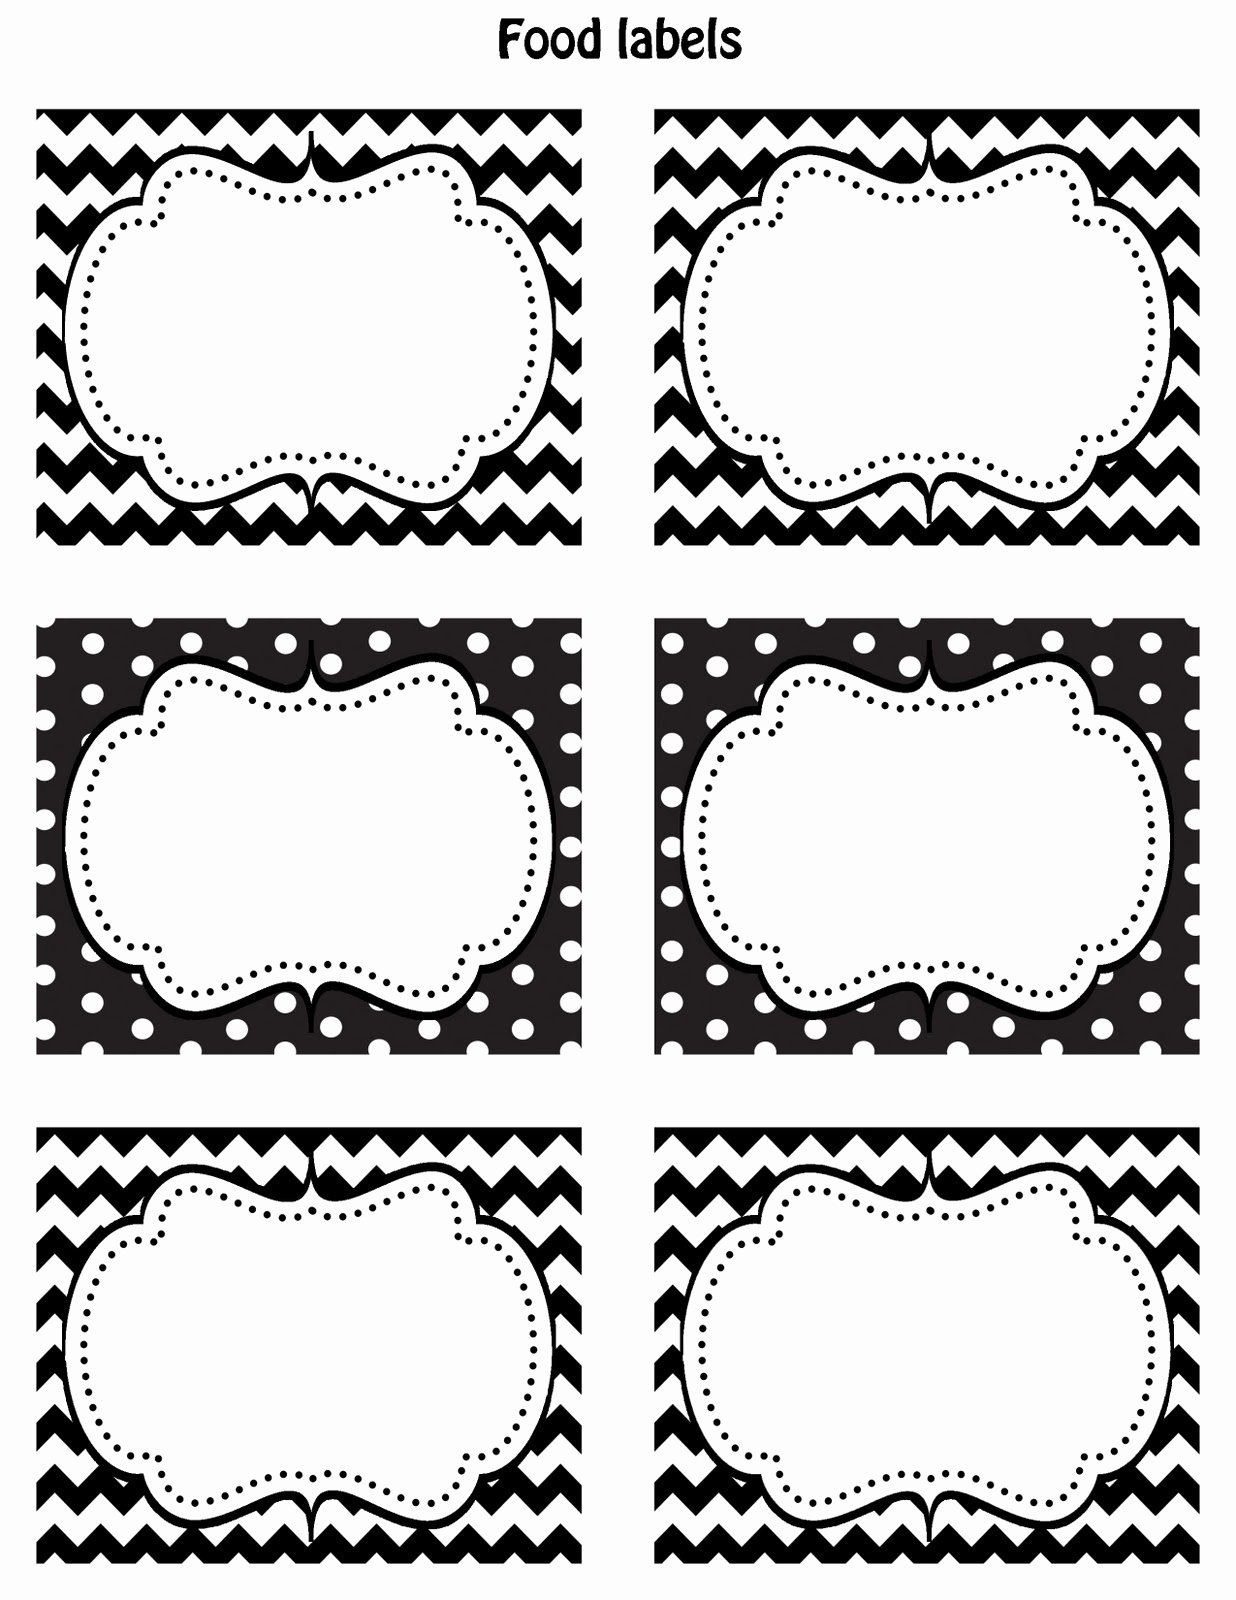 Happy Friday Free Printable Food Labels